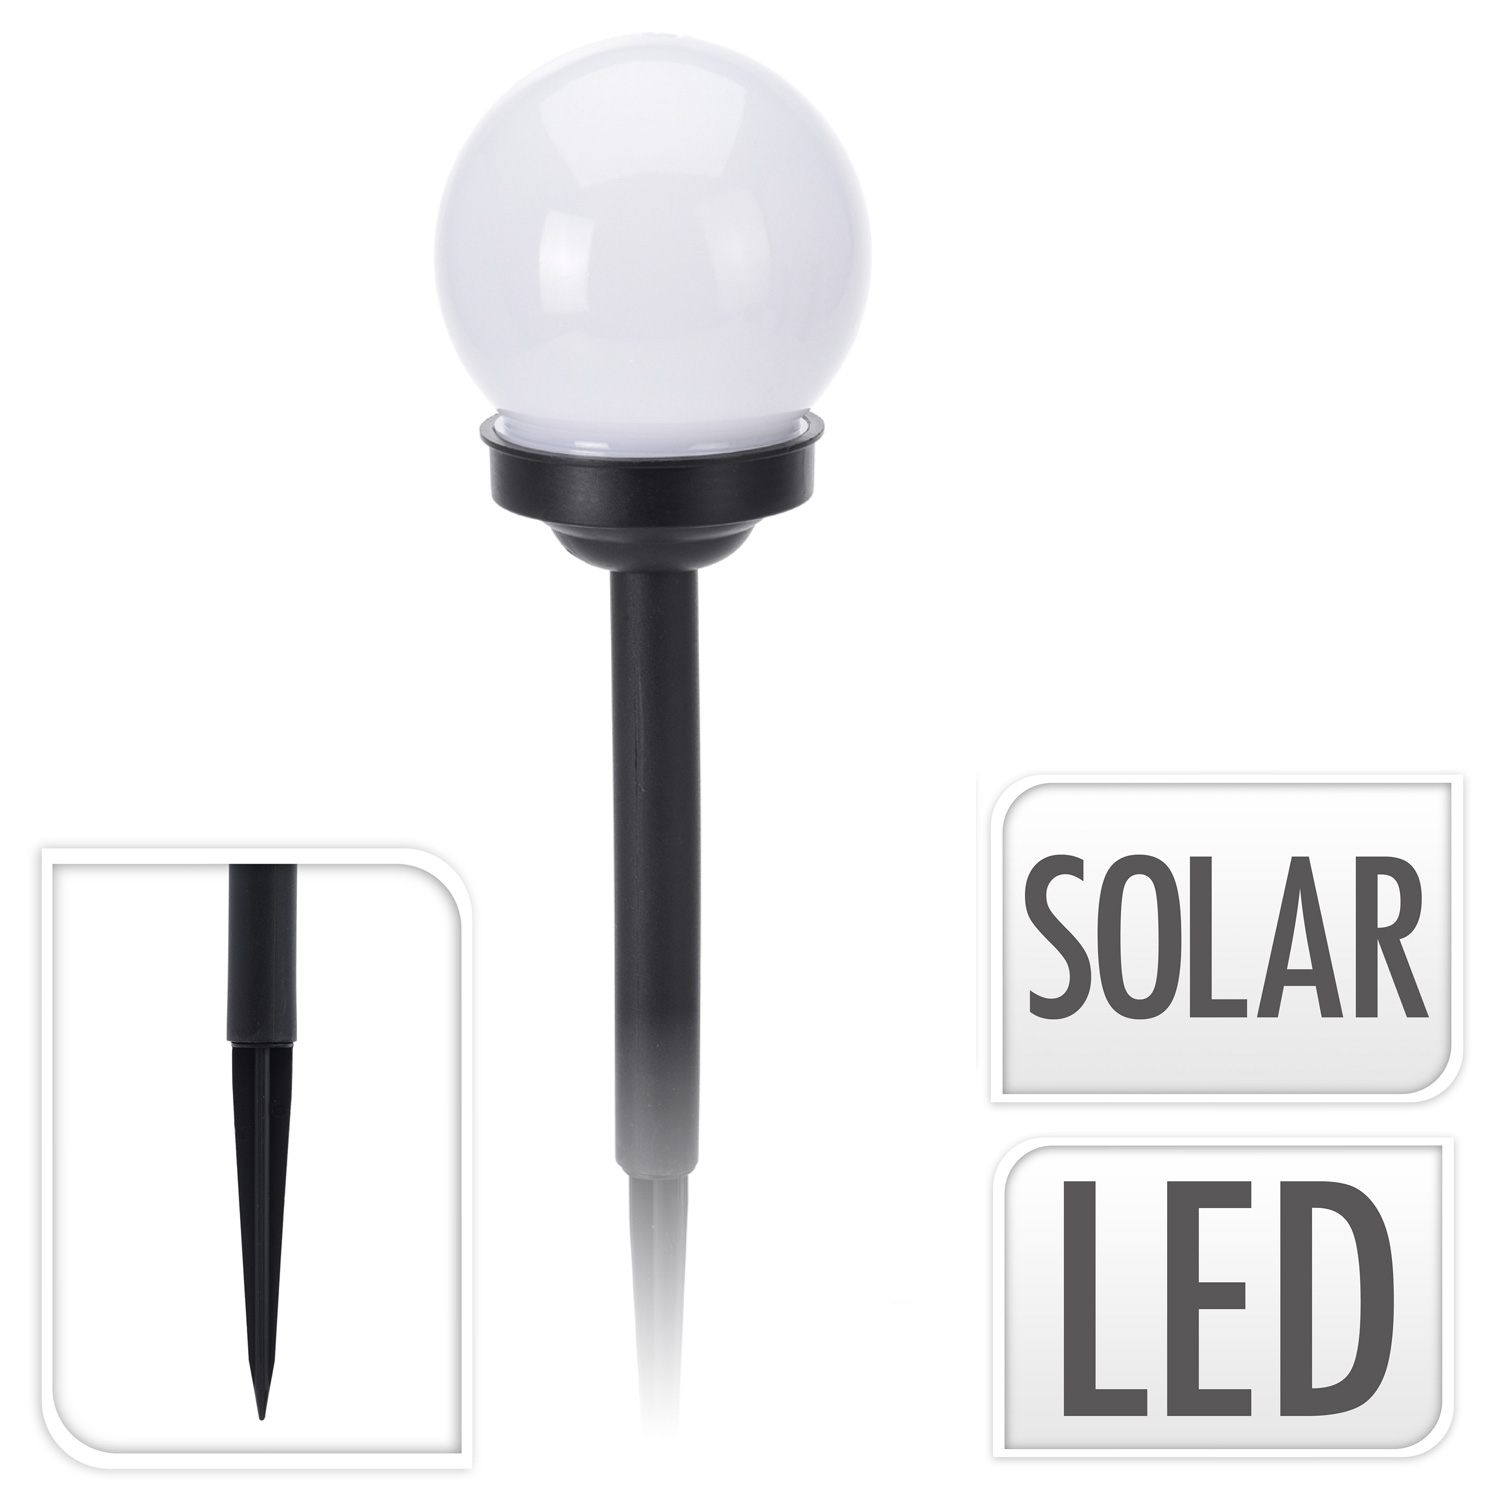 led solarlampe 10 cm kugel warmwei solarleuchte gartenleuchte solarkugel lampe ebay. Black Bedroom Furniture Sets. Home Design Ideas